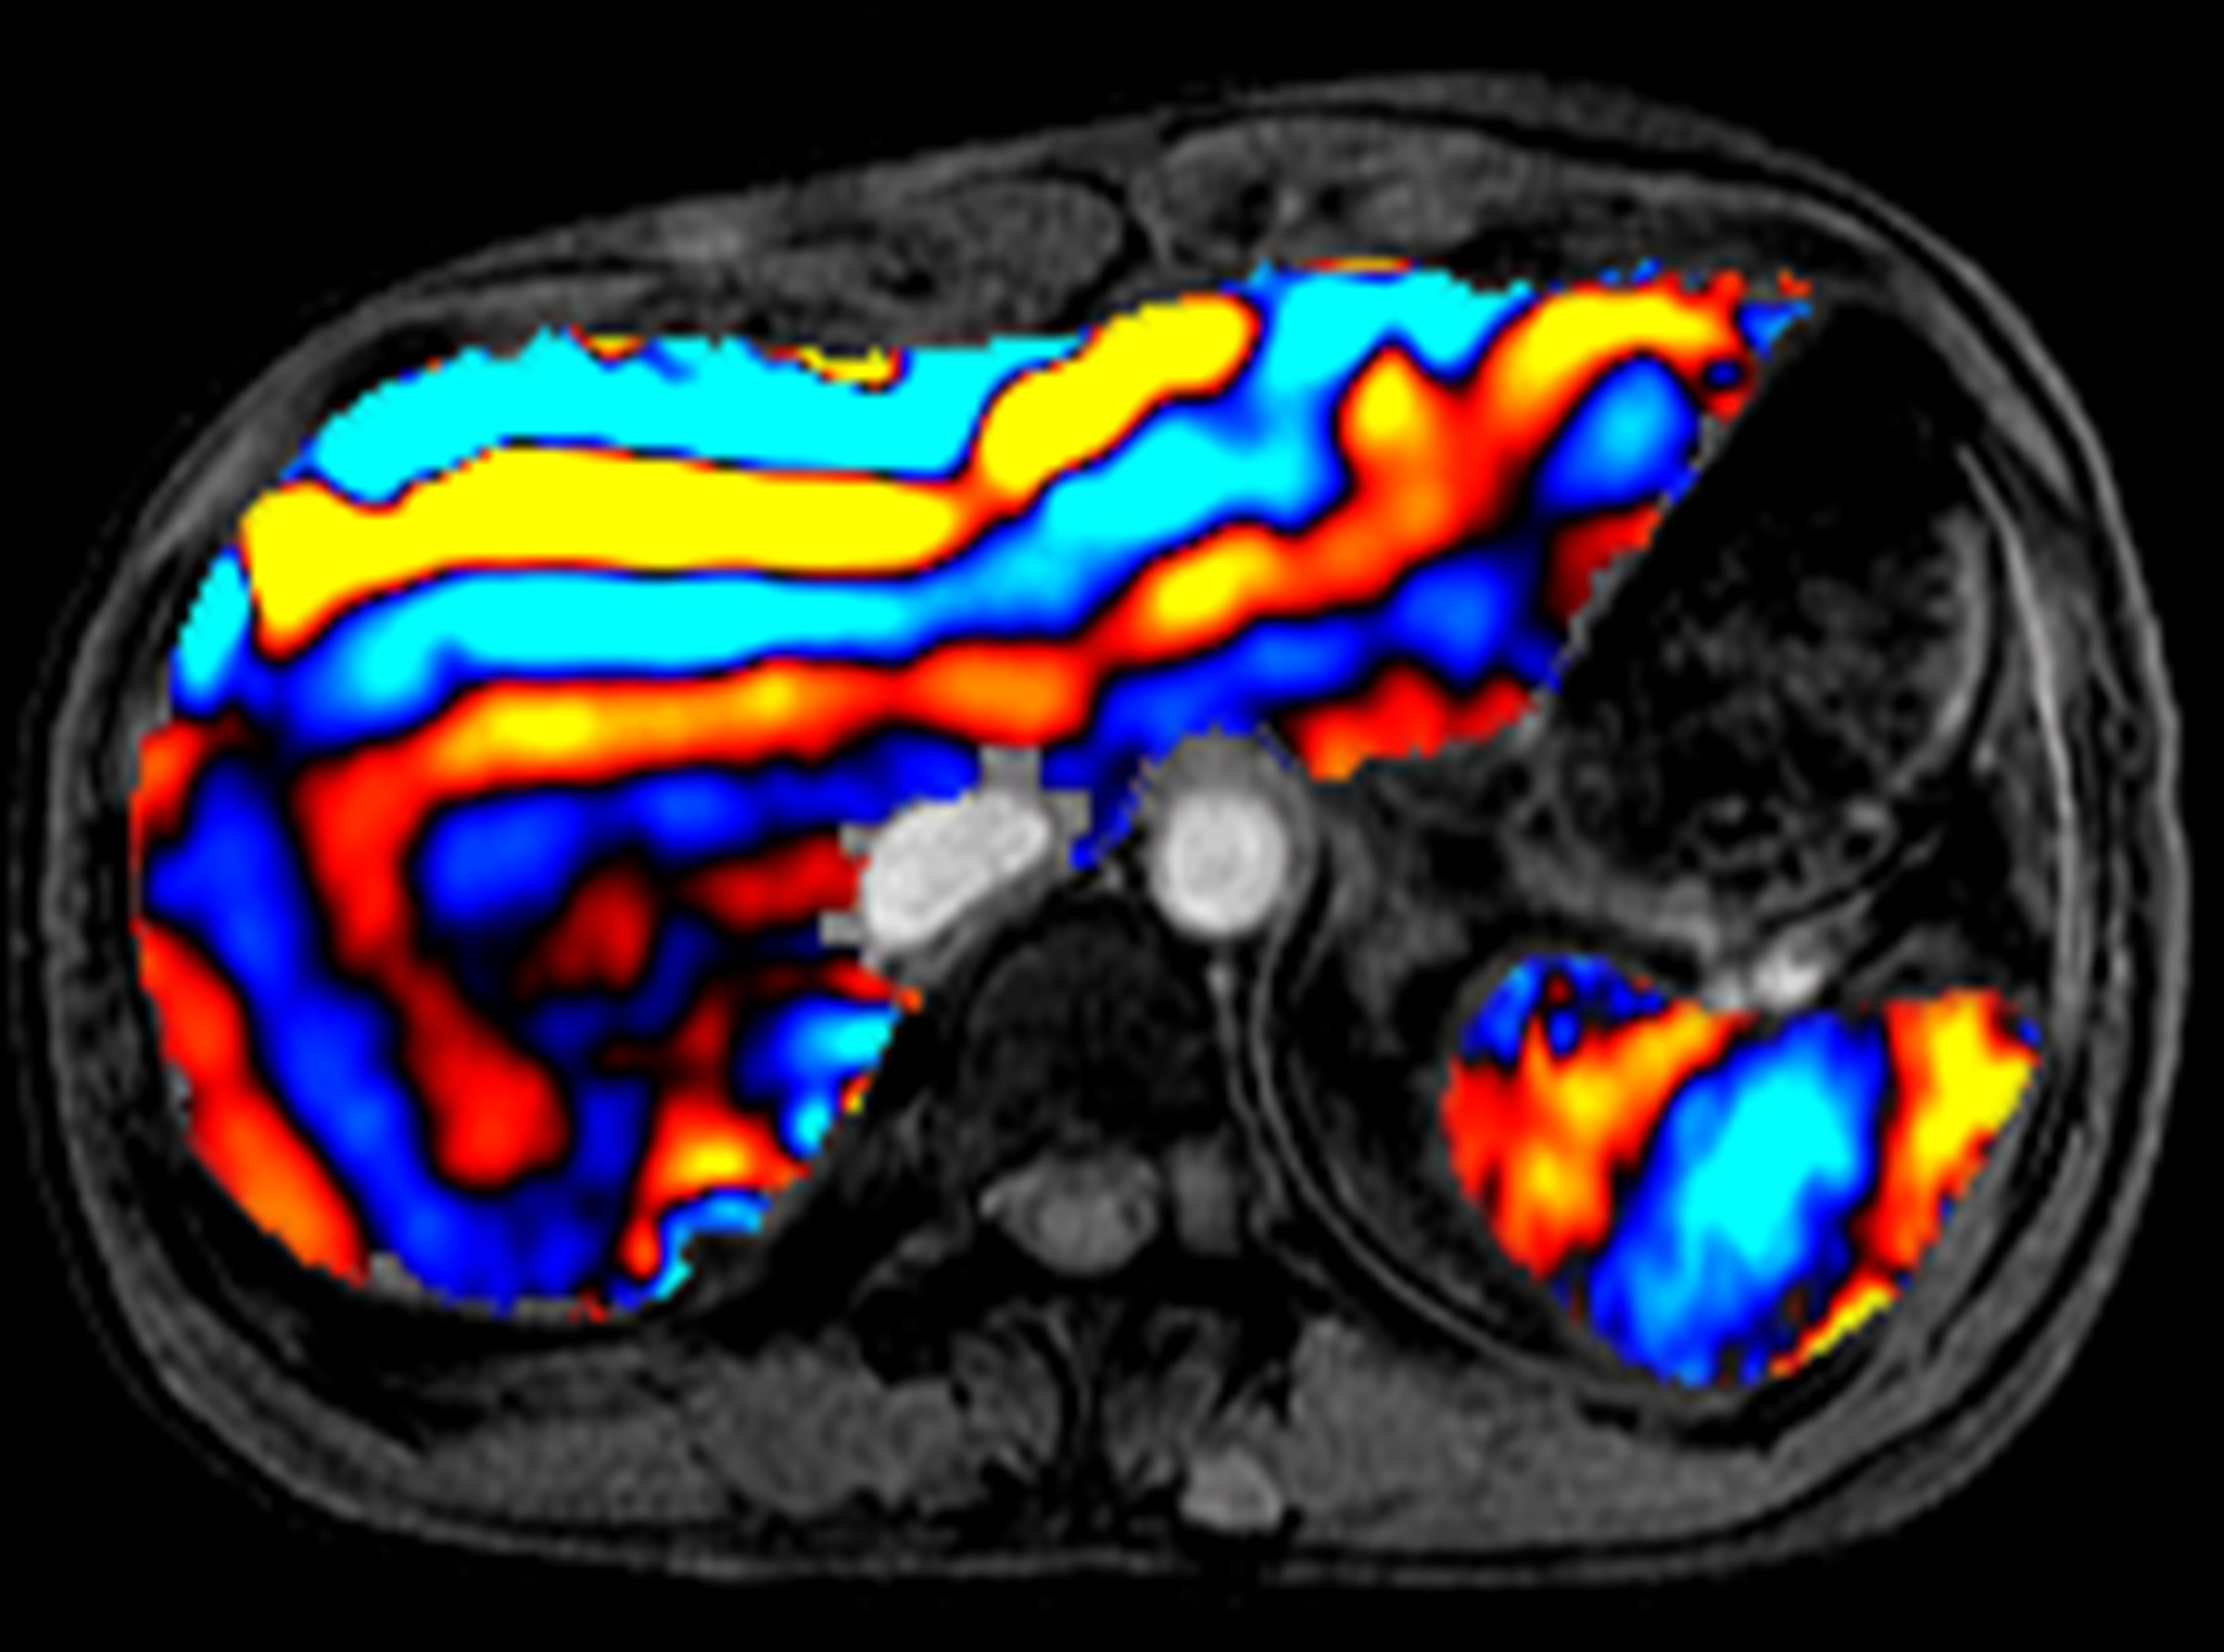 This is an image of the liver using magnetic resonance elastography.  It is multicolored and different colors correspond to the different stiffness of the tissue